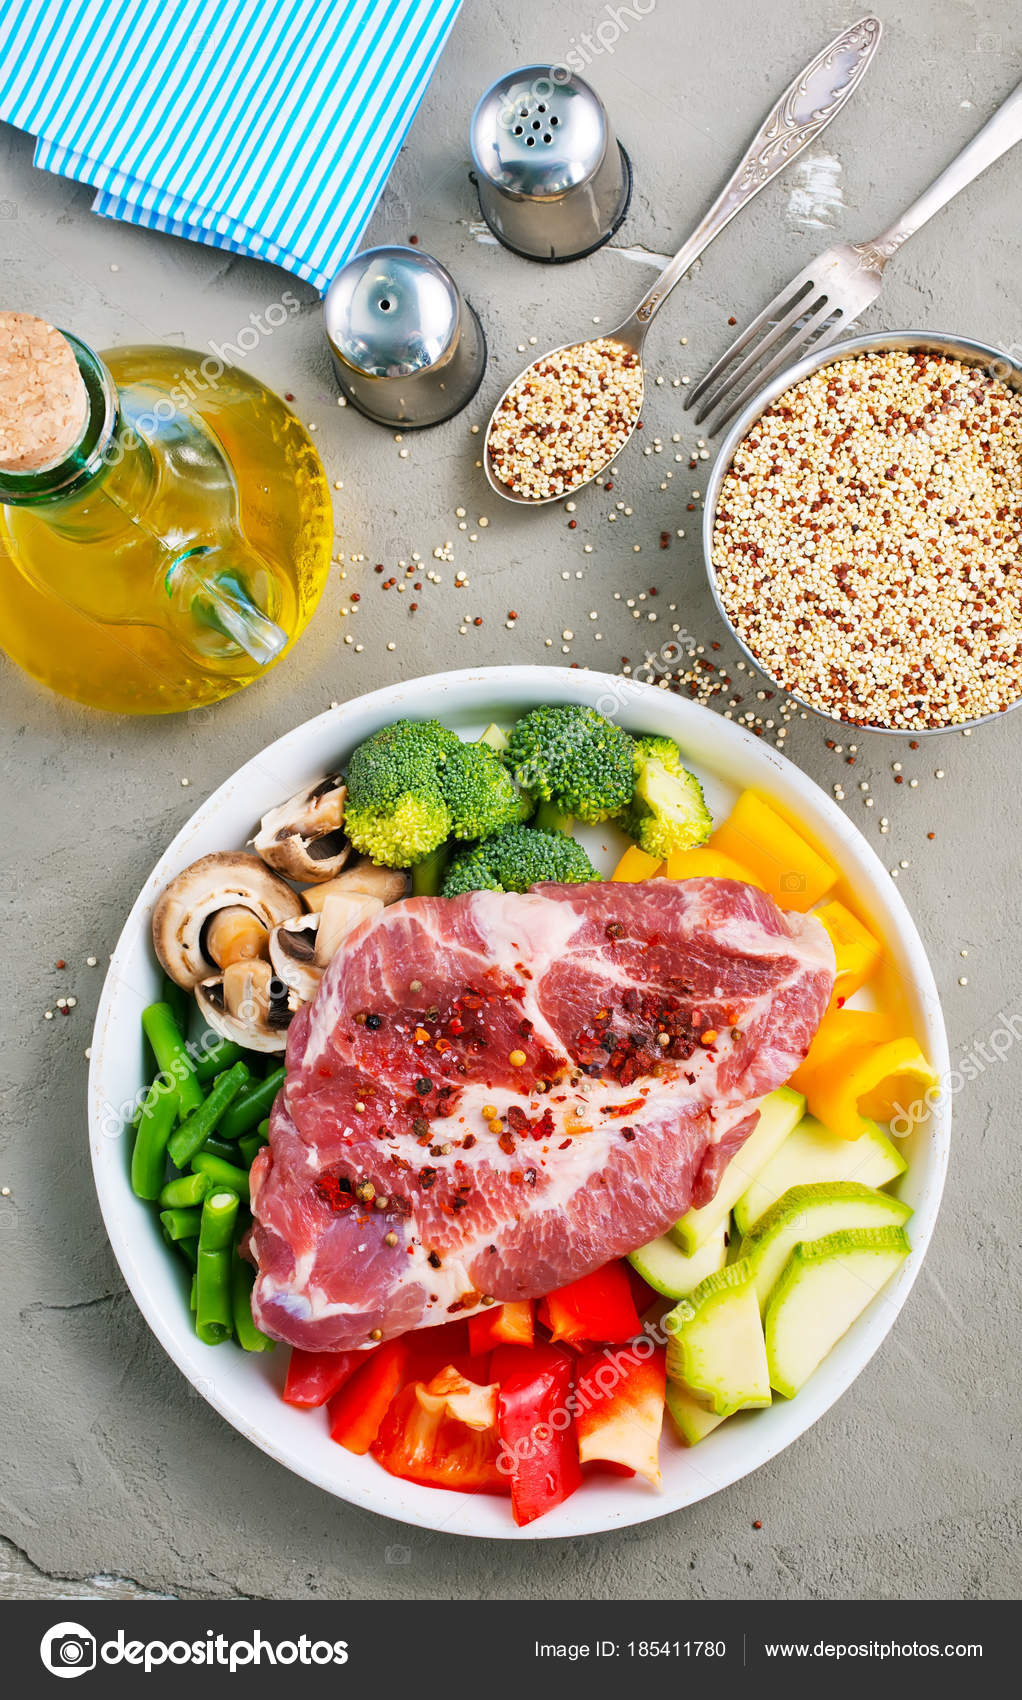 Raw Meat Vegetables Plate Ingredients Dinner Table u2014 Stock Photo & Raw Meat Vegetables Plate Ingredients Dinner Table u2014 Stock Photo ...